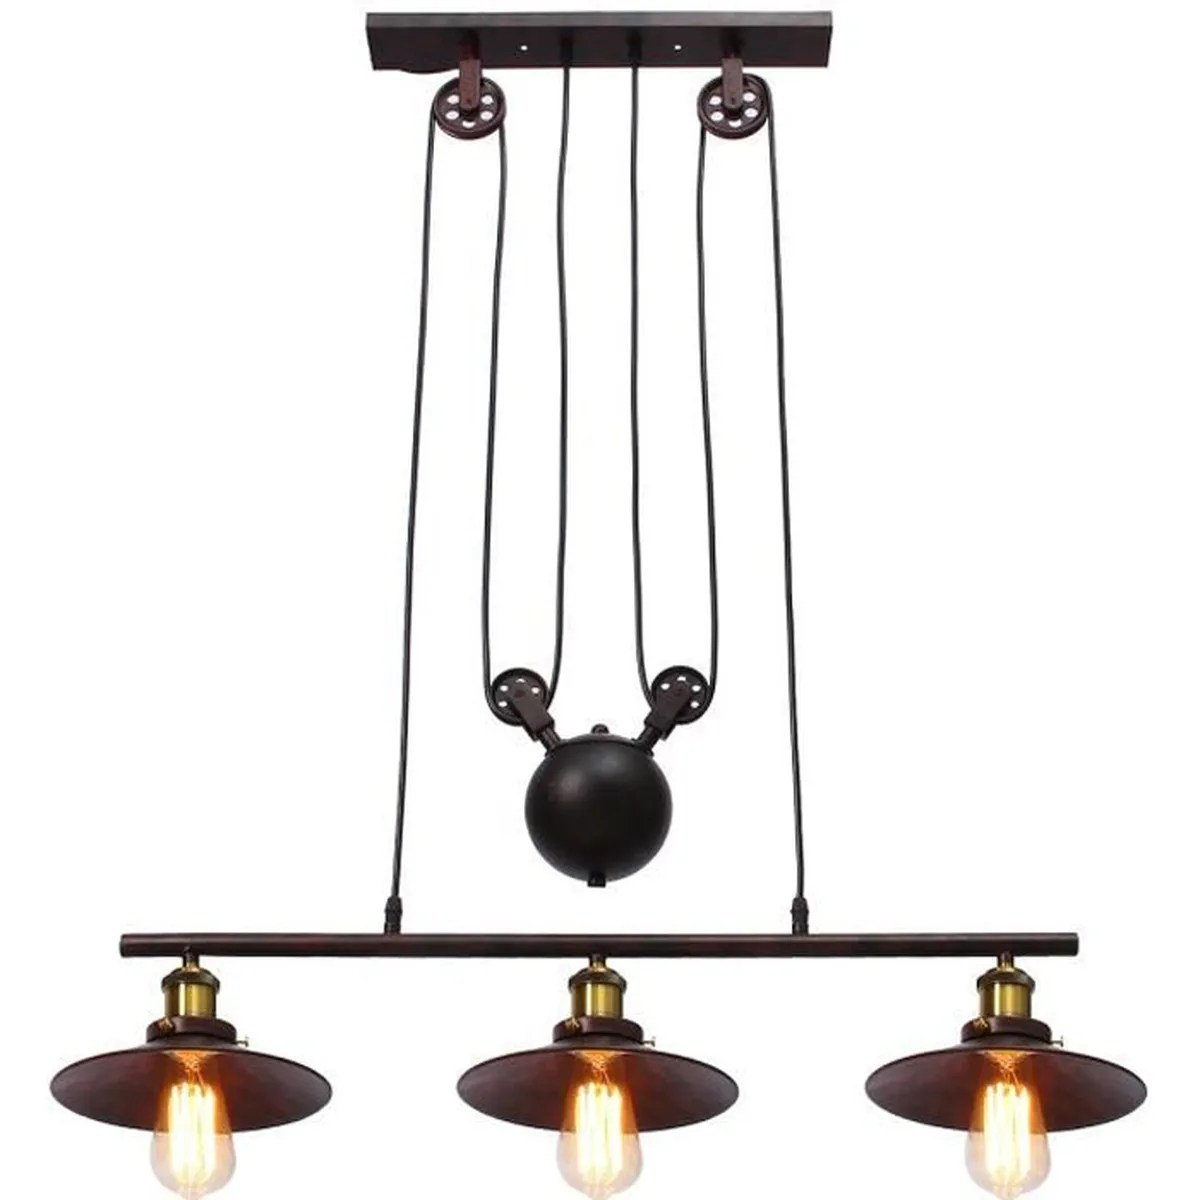 Luminaire Suspension Luminaire Suspension 3 Lampes Qj31 Montrealeast